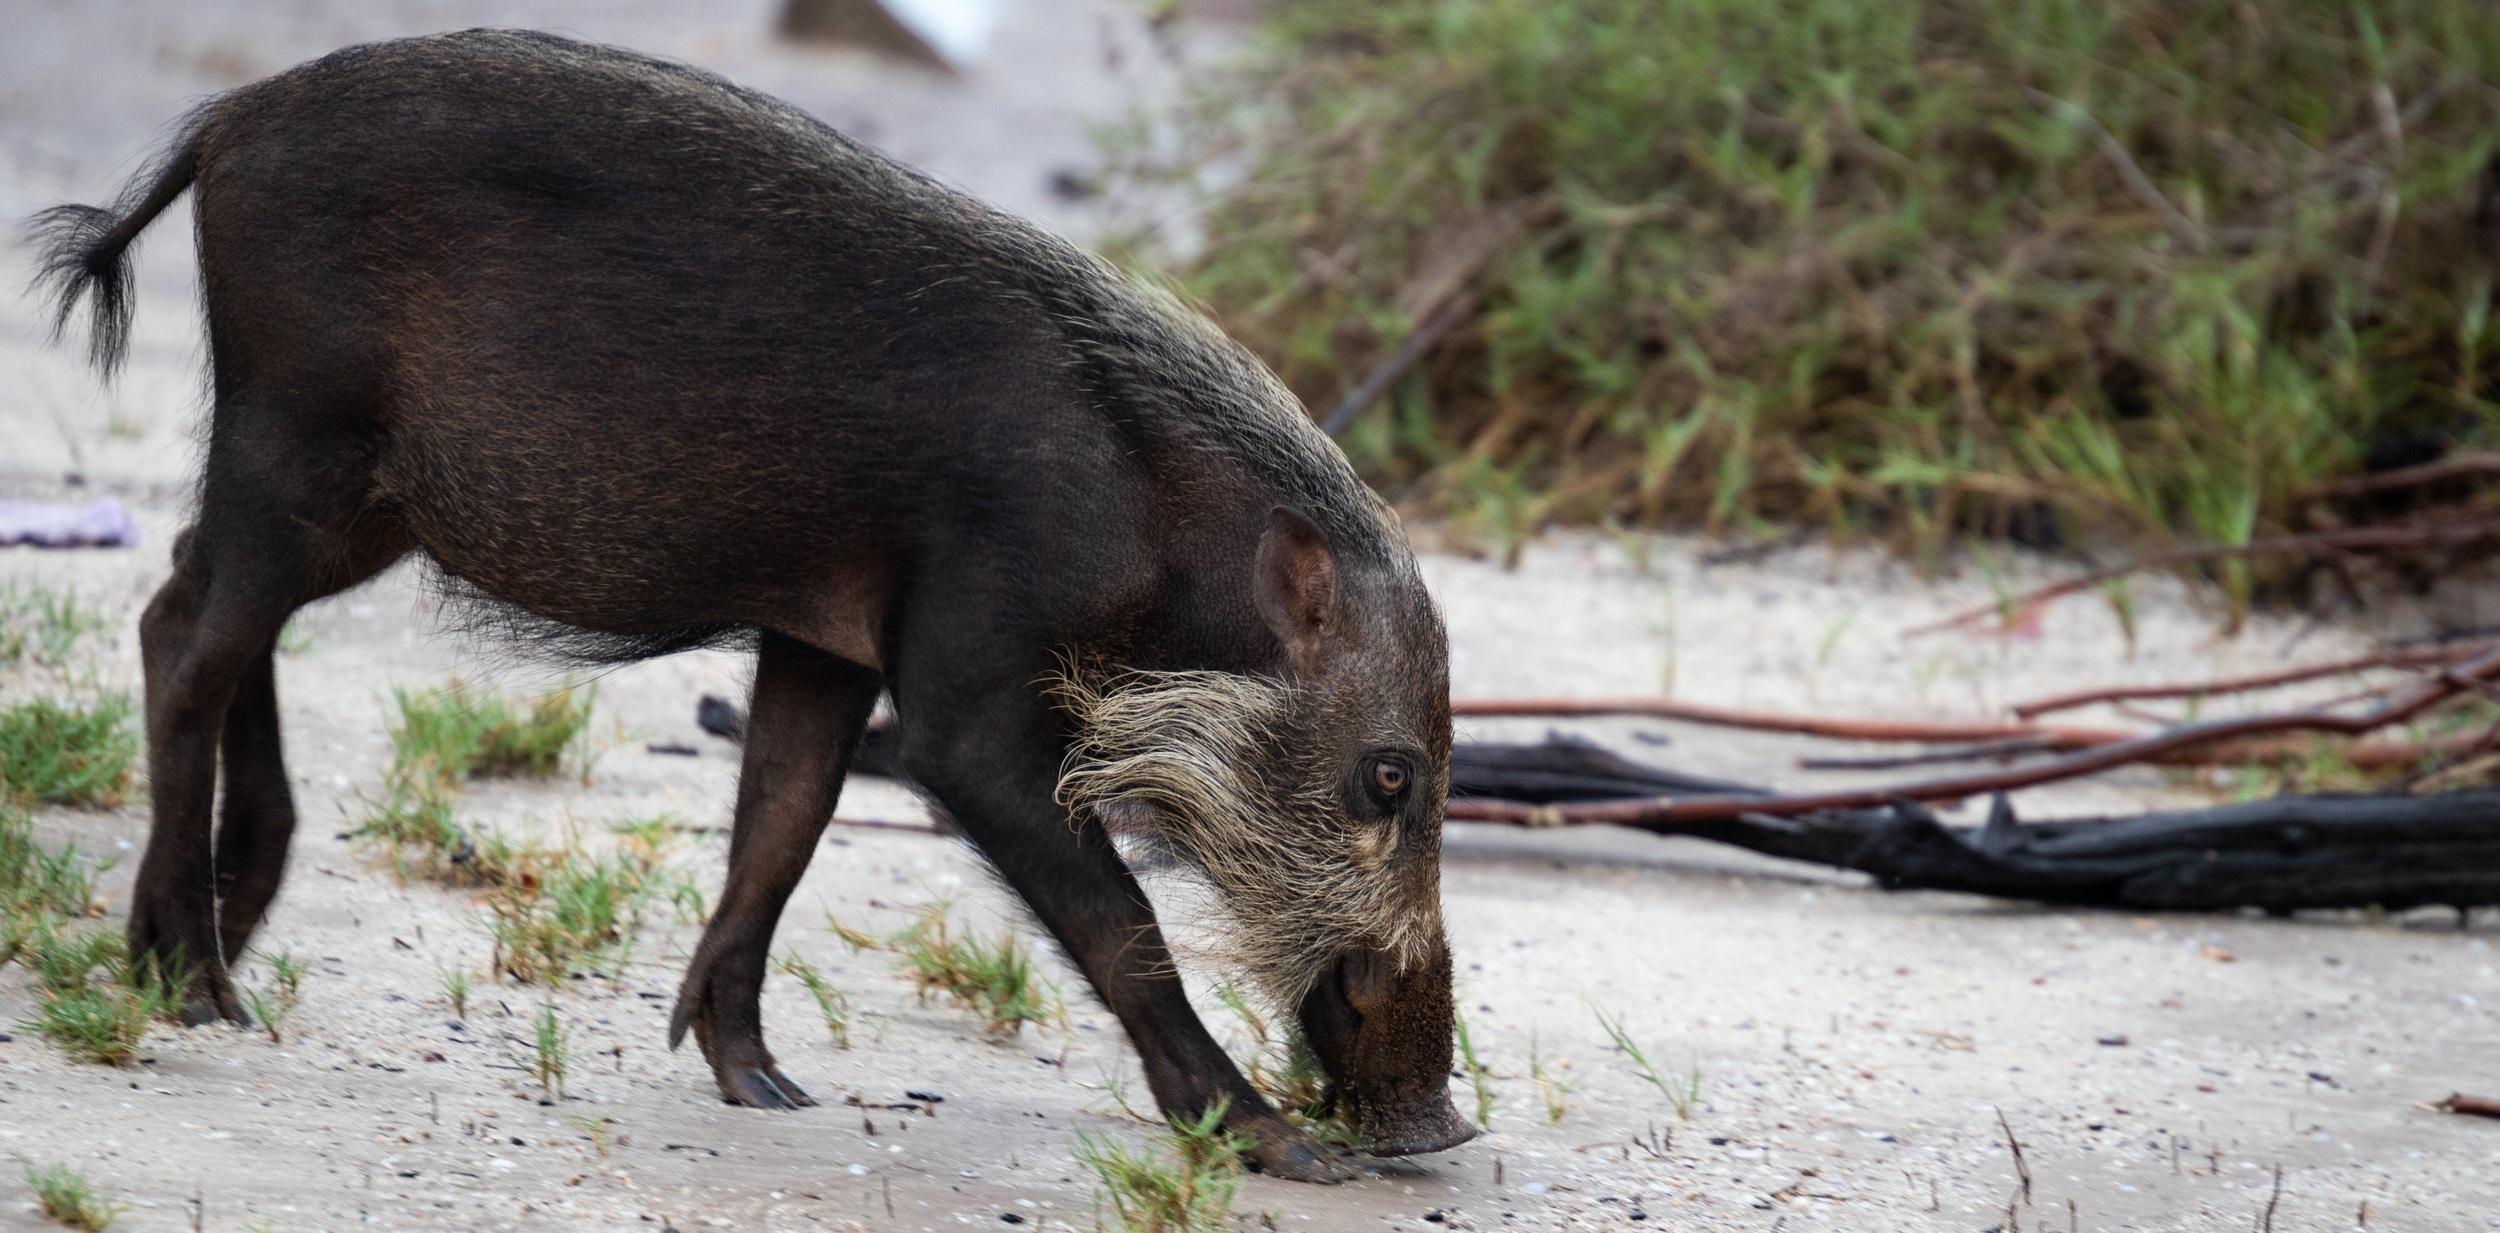 Young Bornean bearded pig (Sus barbatus) searching a sandy beach for food in Bako National Park in Sarawak, Malaysia.